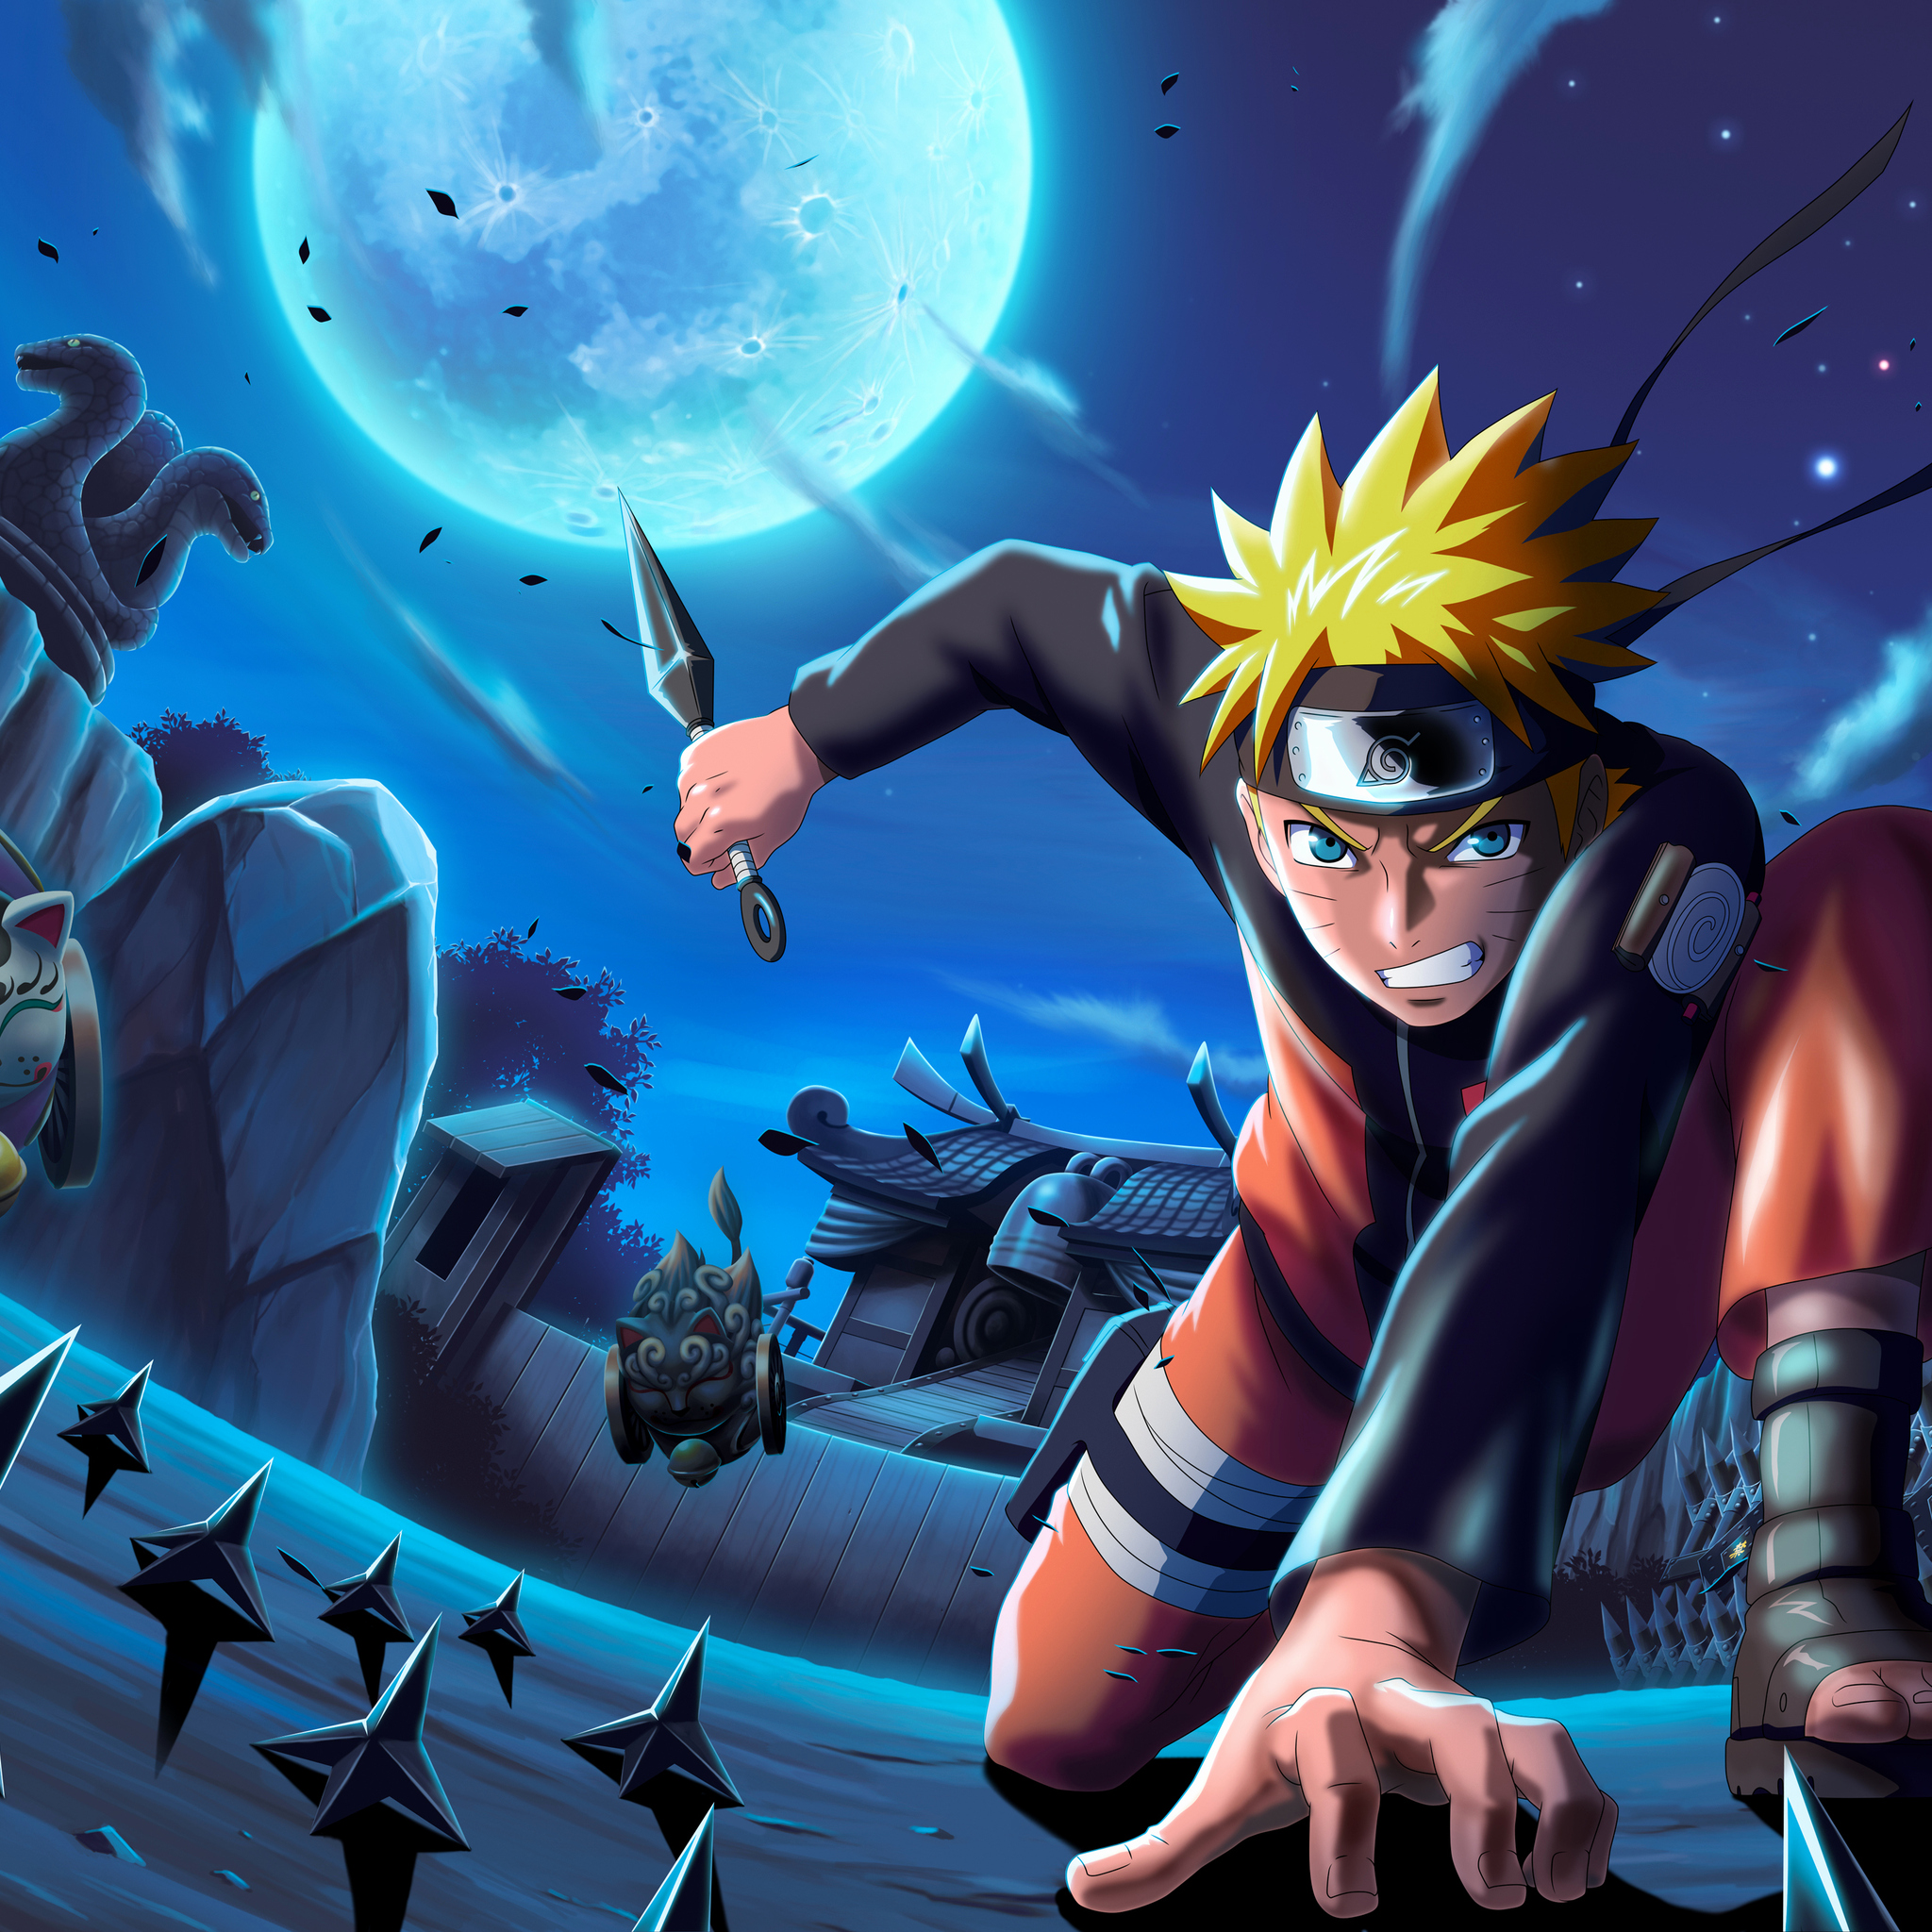 15 Wallpaper Boruto Hd 3d Richa Wallpaper